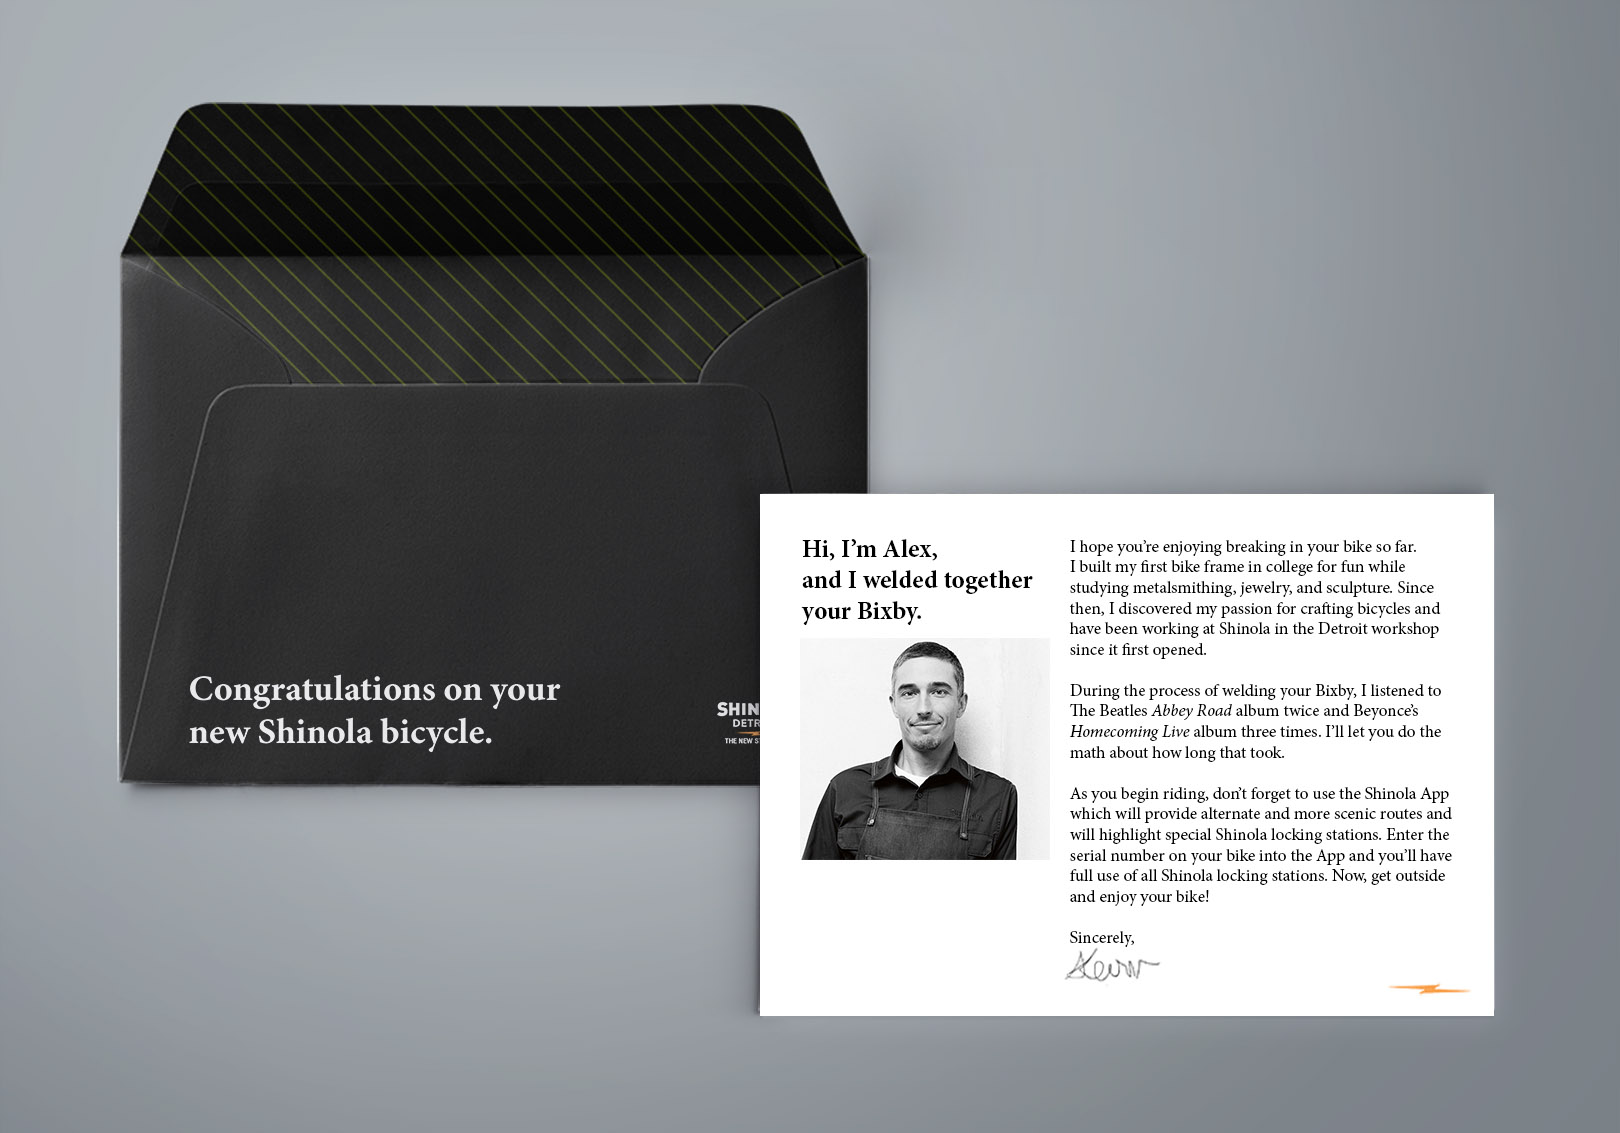 Shinola will mail a personalized message to each customer within a week after they purchase a Shinola bike.